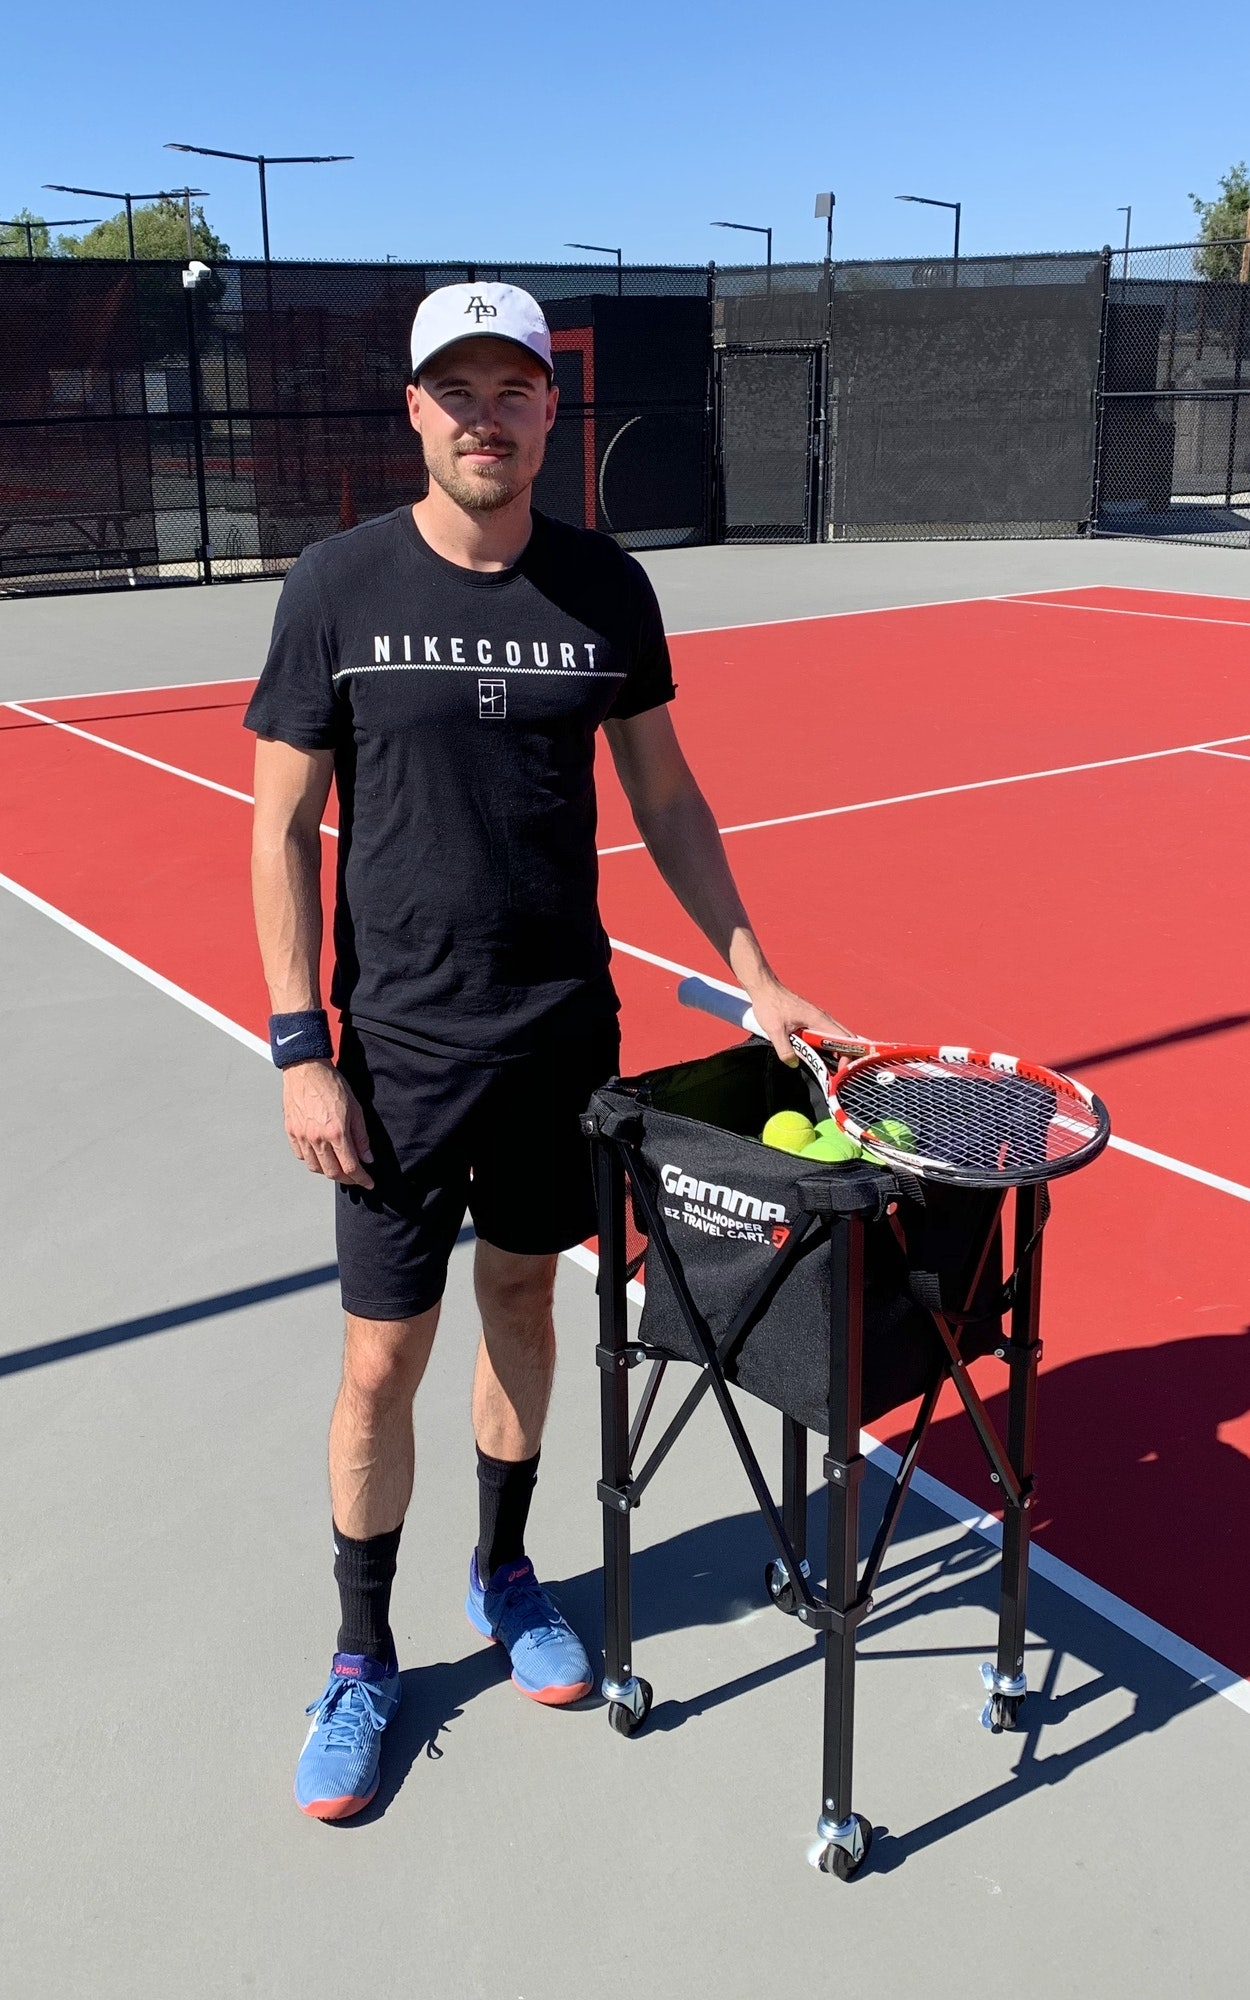 Frederik W. teaches tennis lessons in Whittier, CA